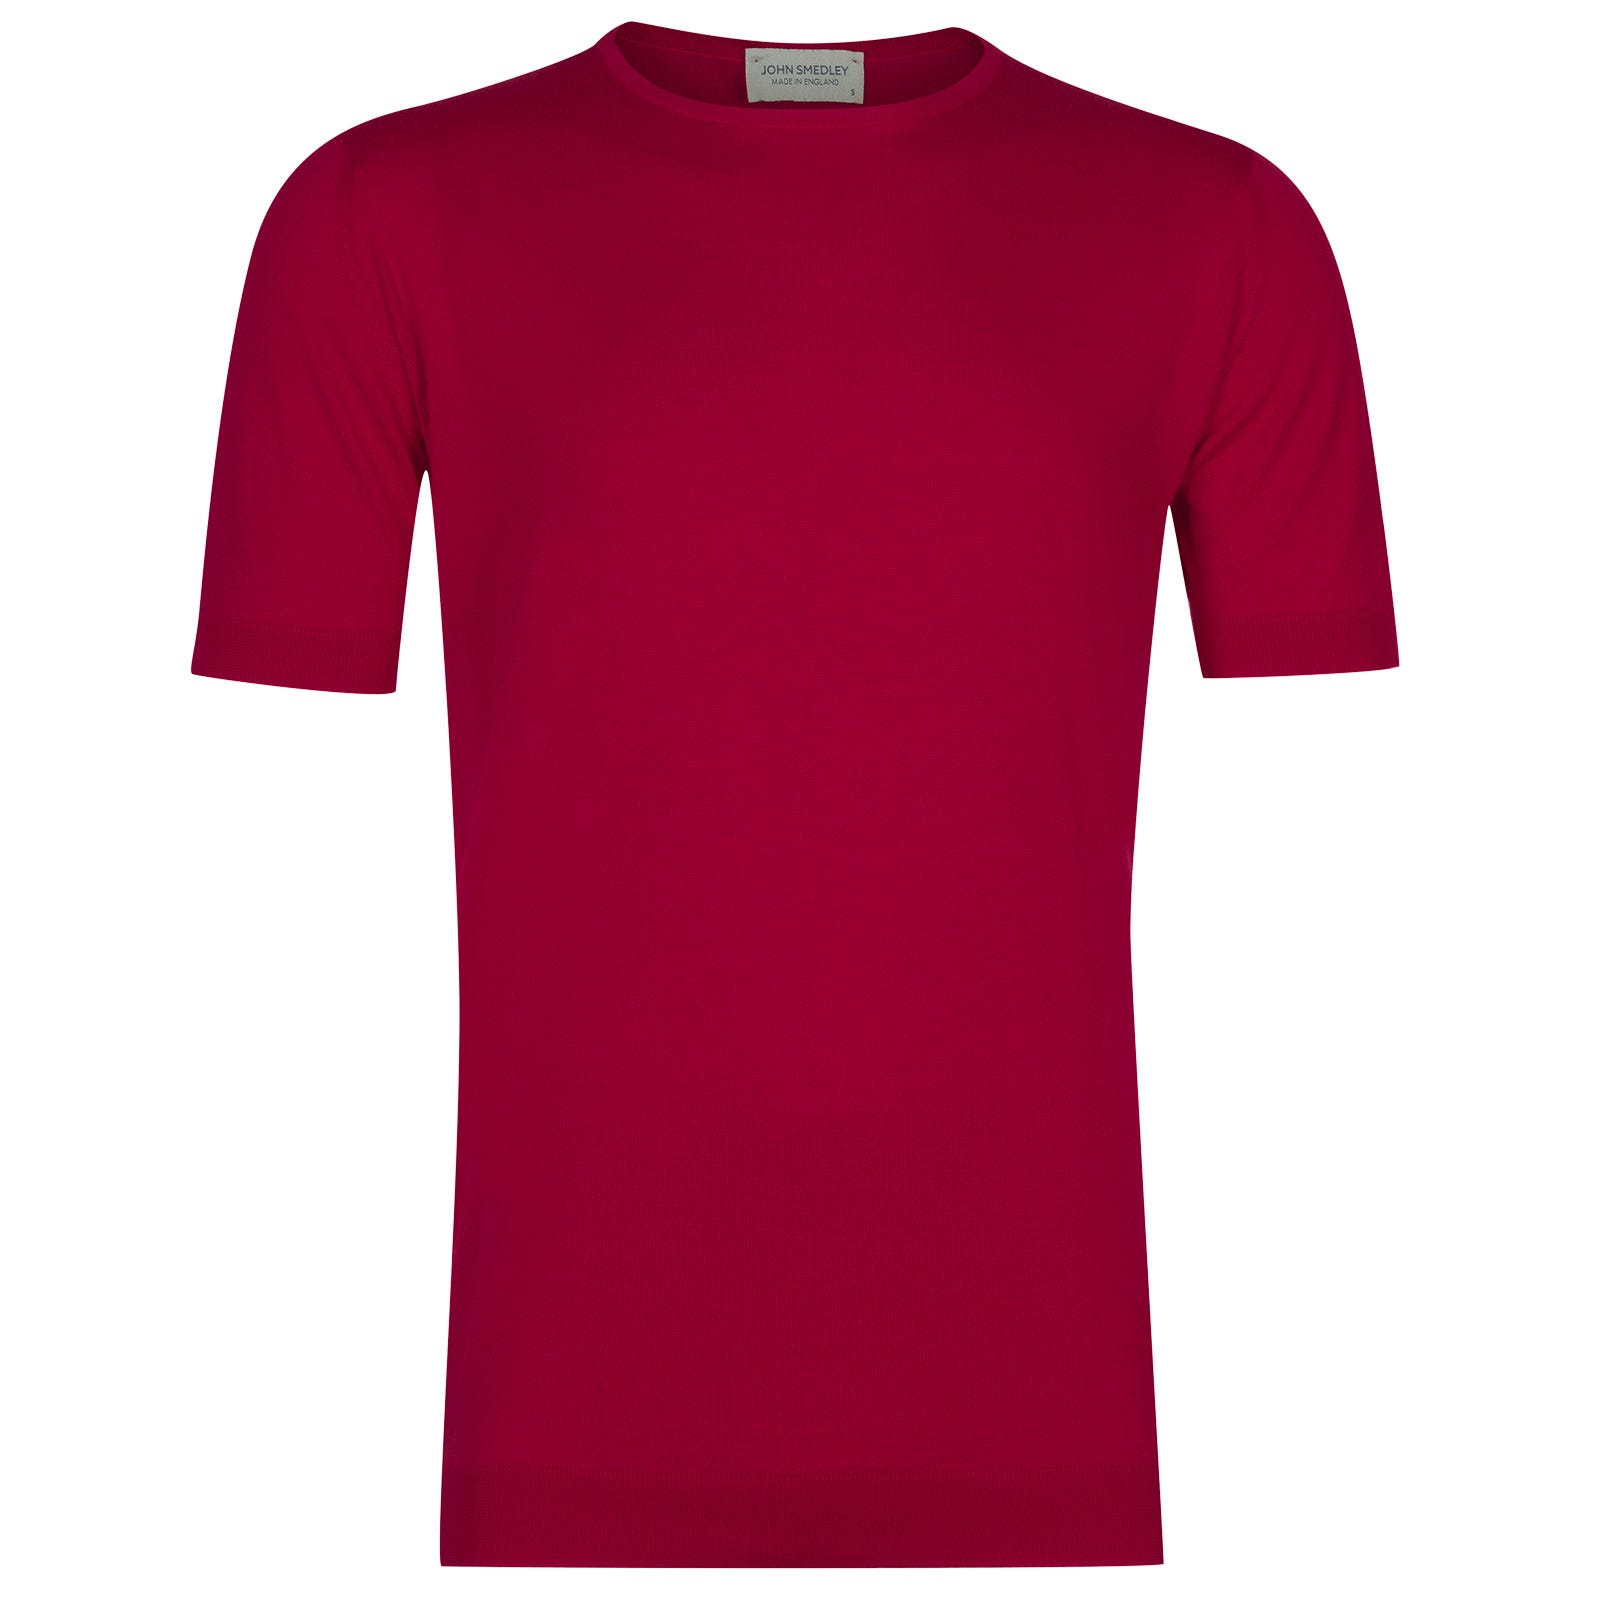 John Smedley belden Sea Island Cotton T-shirt in Scarlet Sky-L